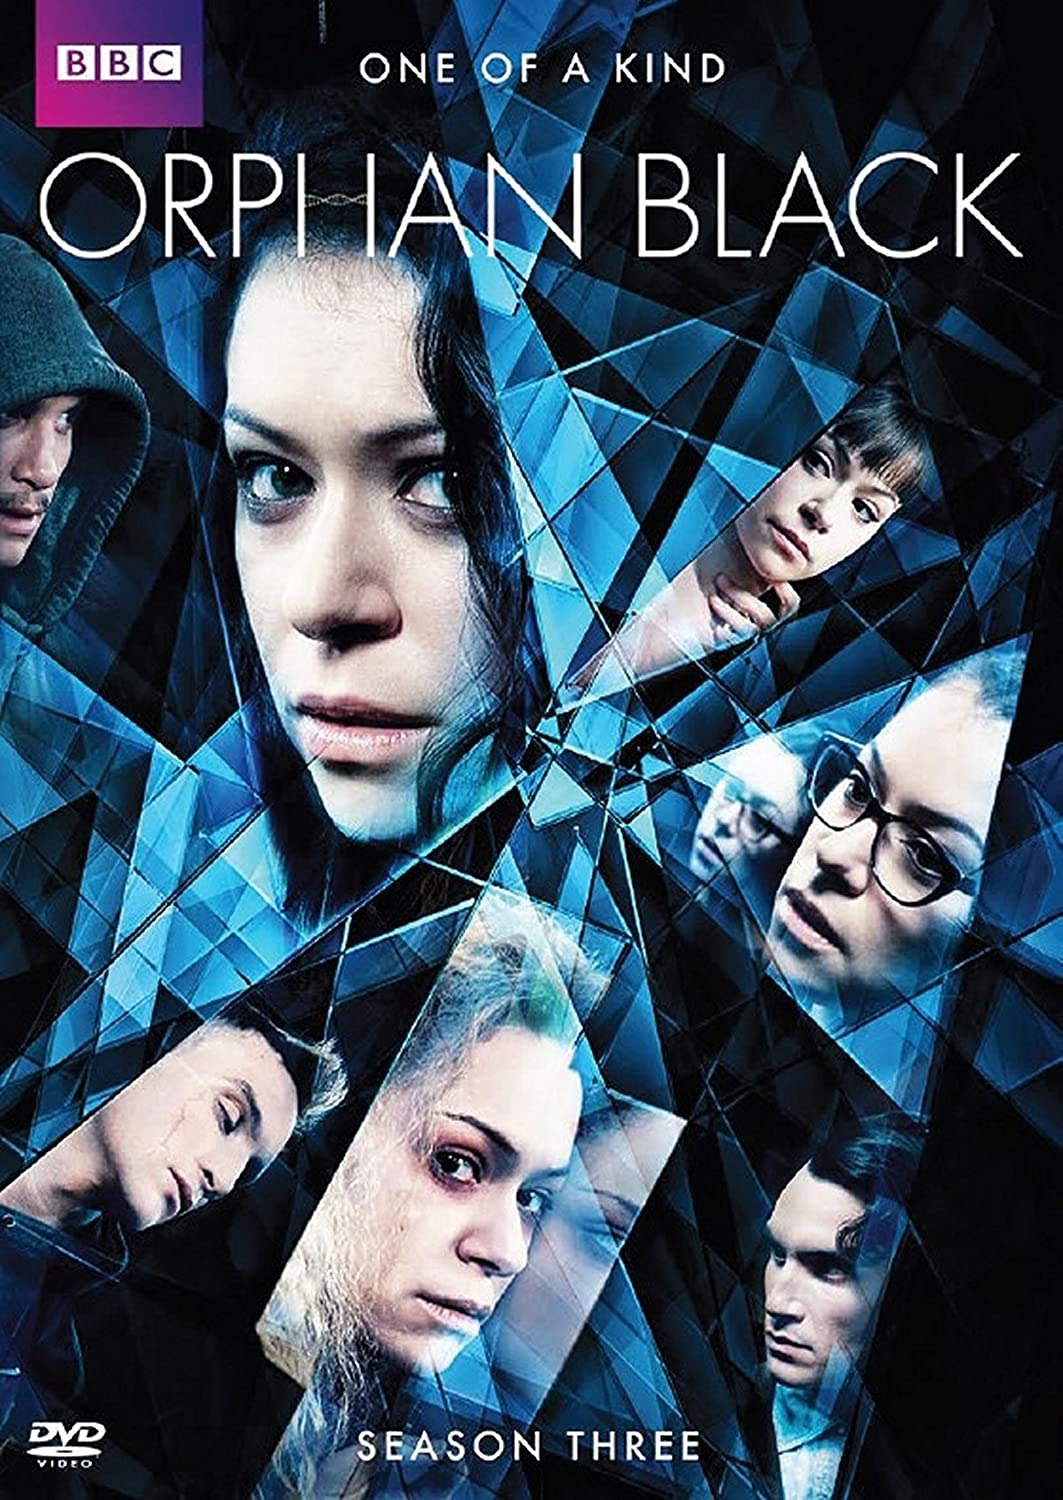 Orphan black t shirt uk - Amazon Com Orphan Black Season Three Tatiana Maslany Skyler Wexler Maria Doyle Kennedy Various Movies Tv